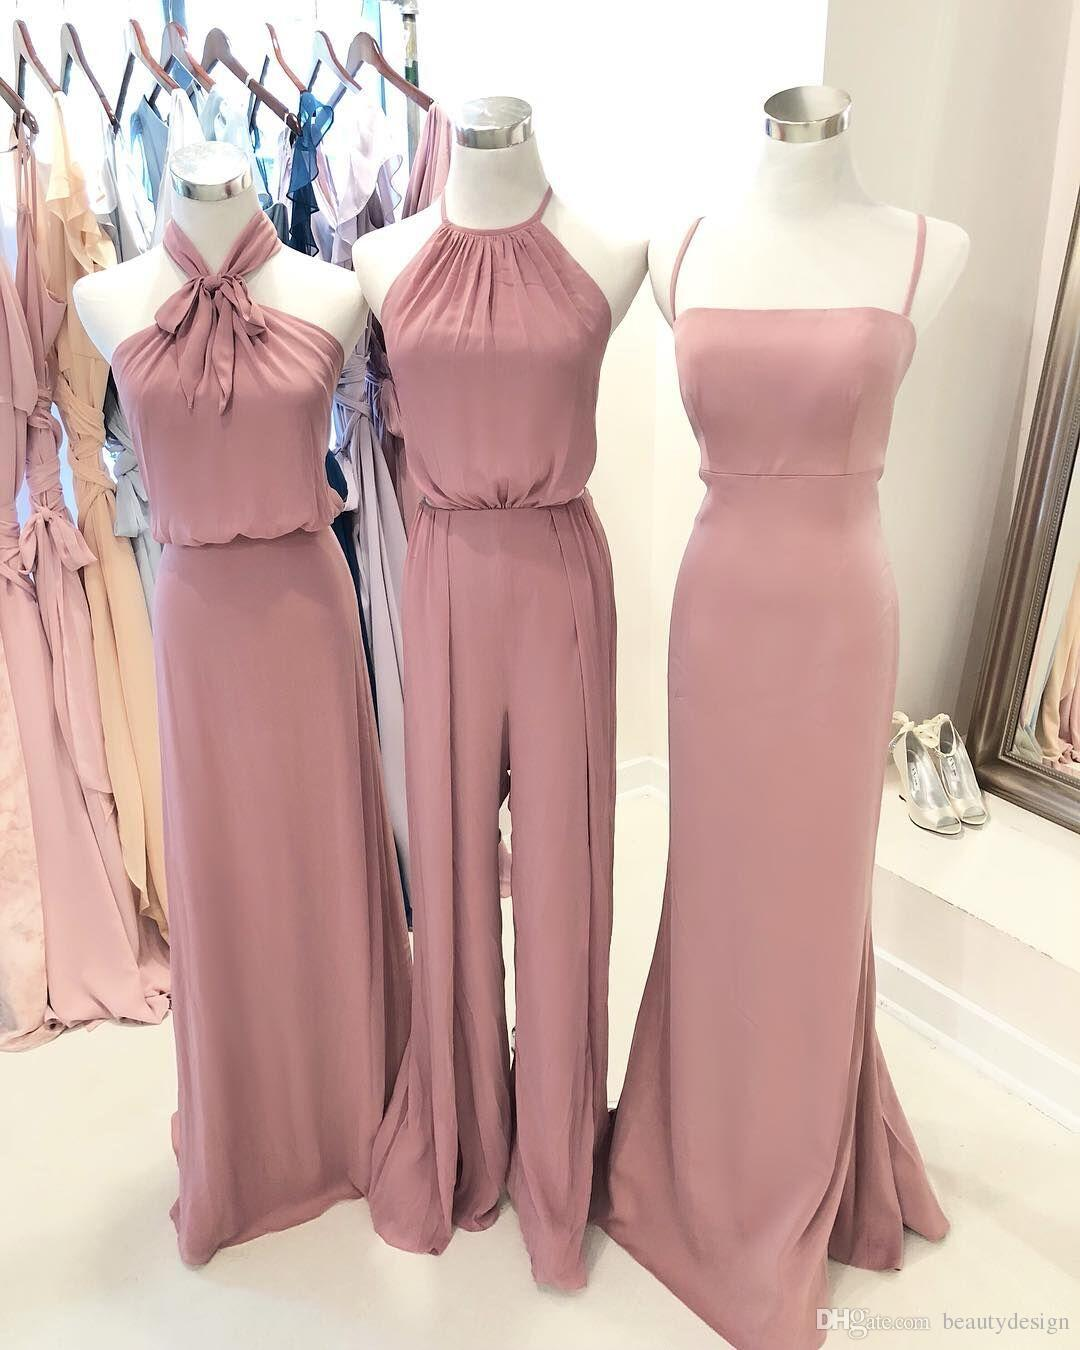 Dusty Rose Pink Bridesmaid Dresses Pant Suit Halter Ruched Chiffon